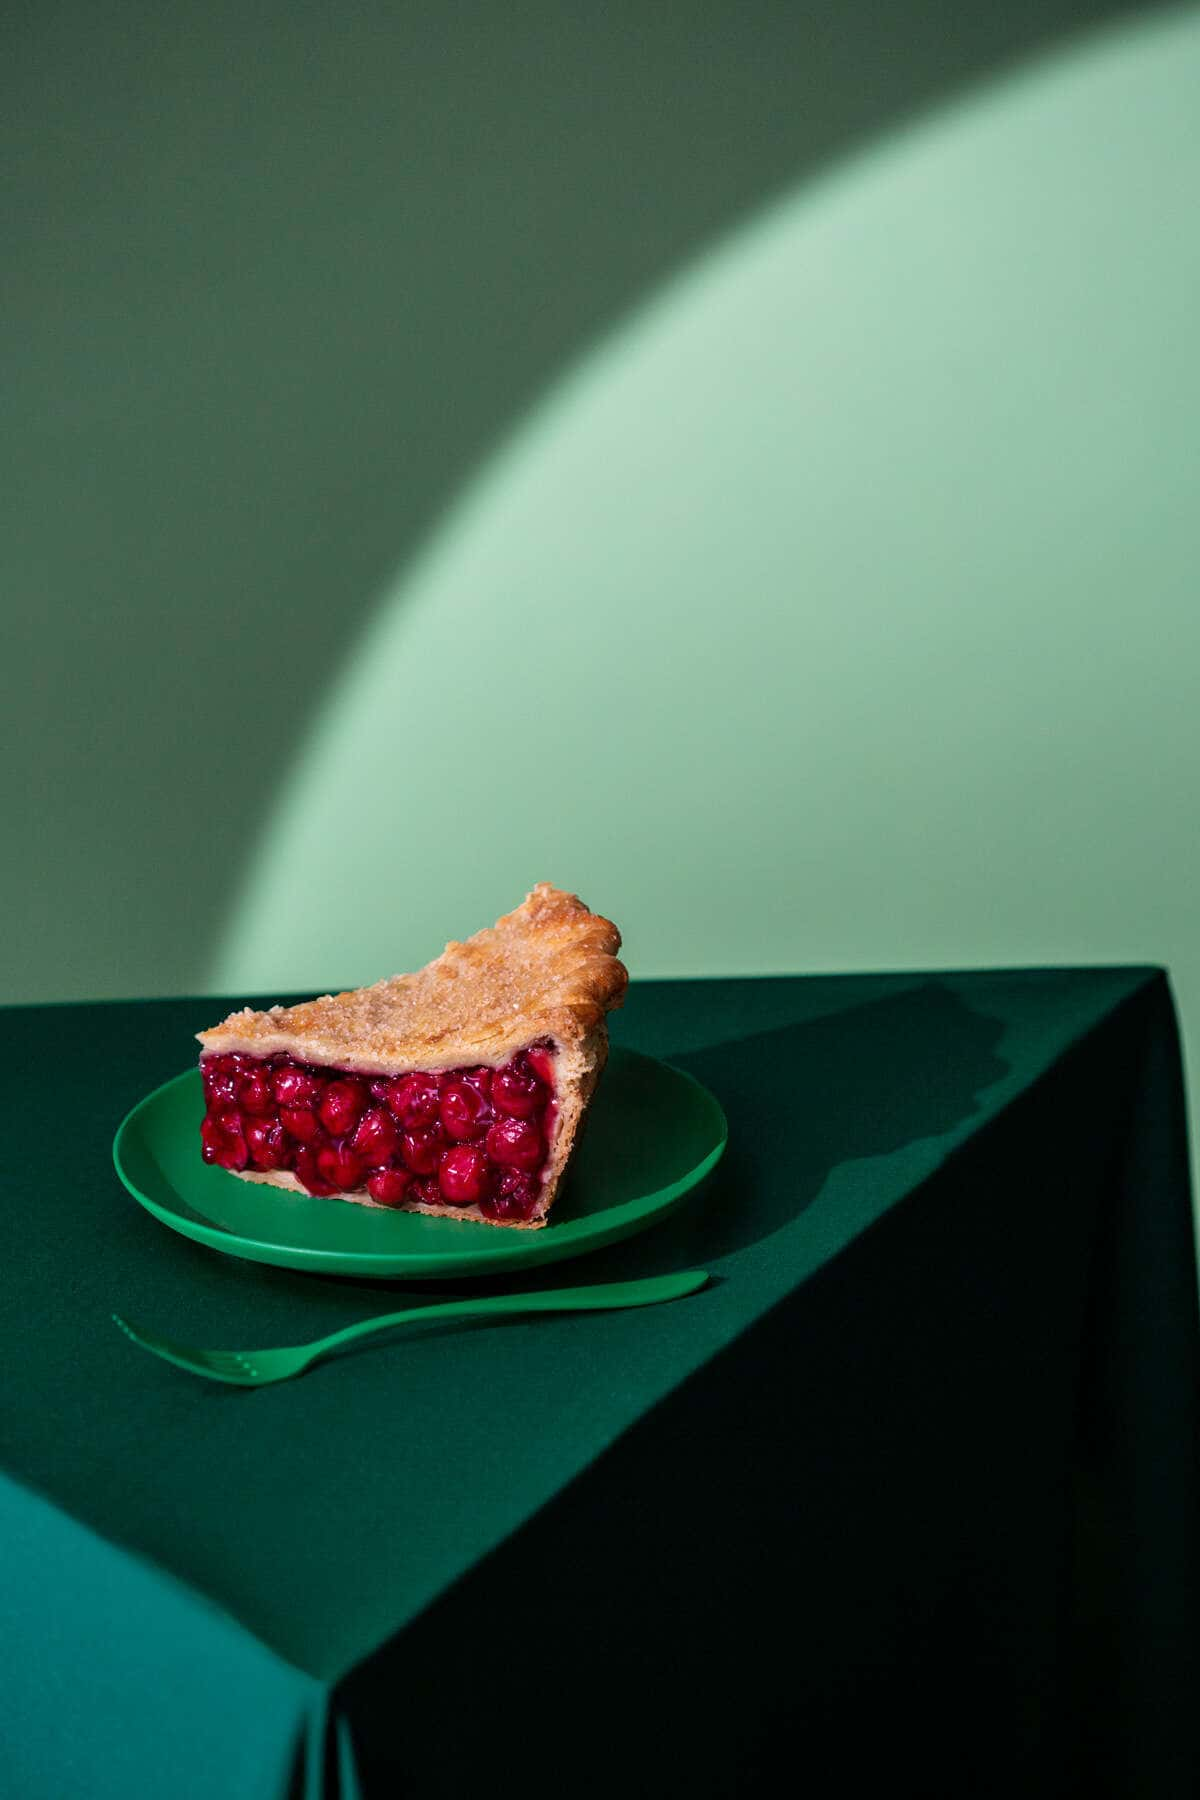 Cherry Pie sat on a green plate on a green table with a hard spotlight used to light the set